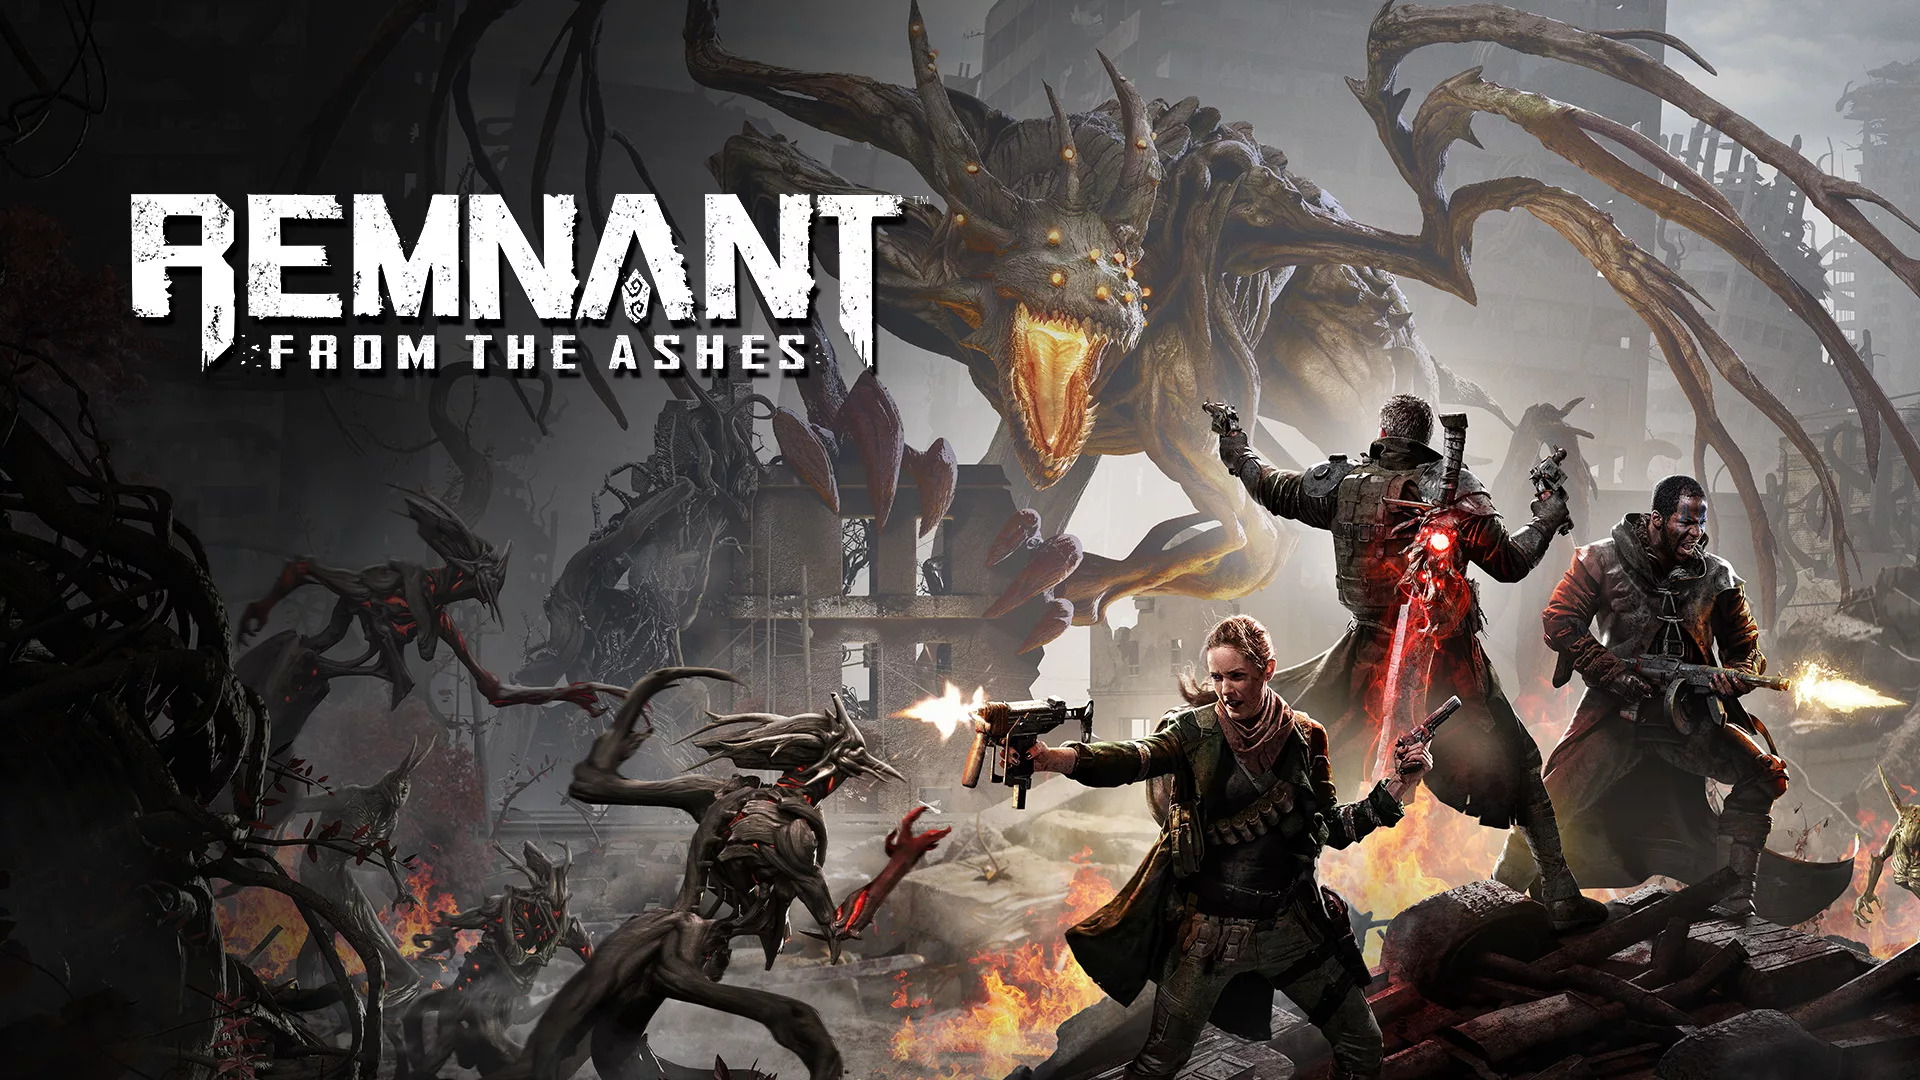 Remnant: From the Ashes - Прохождение, боссы